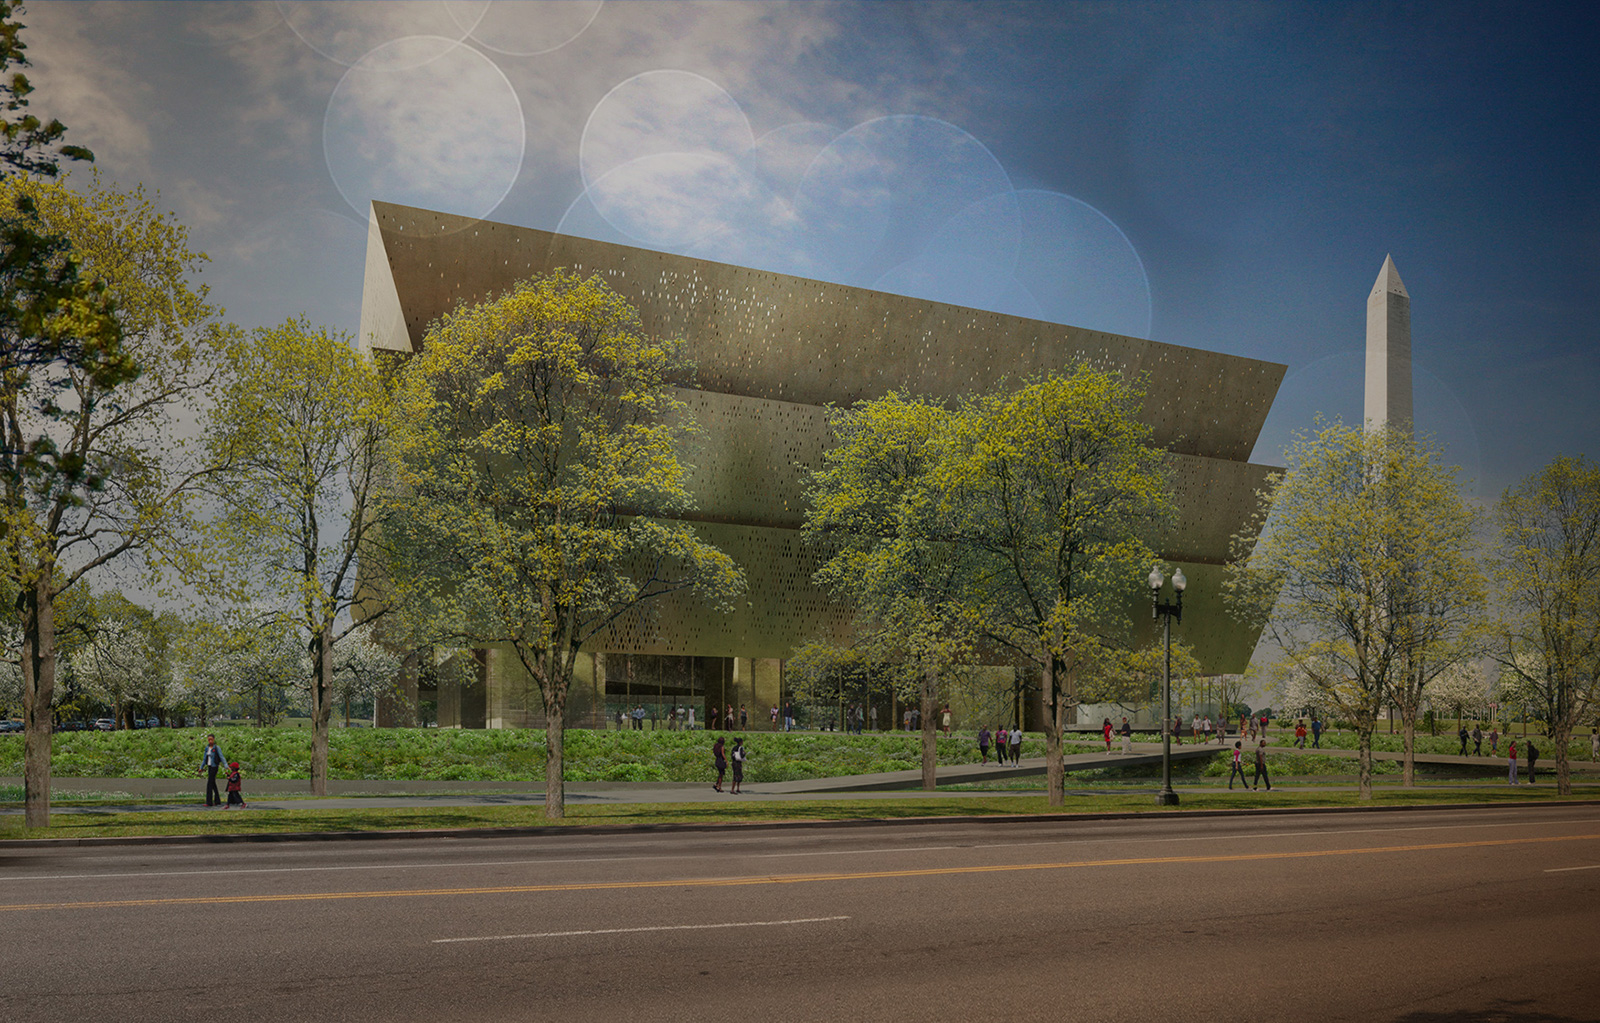 african american musuem essay The dusable museum of african american history gratefully acknowledges the generous support of the chicago park district to the museum the dusable partners with several organizations to develop sustainable museum programming in the chicago community.